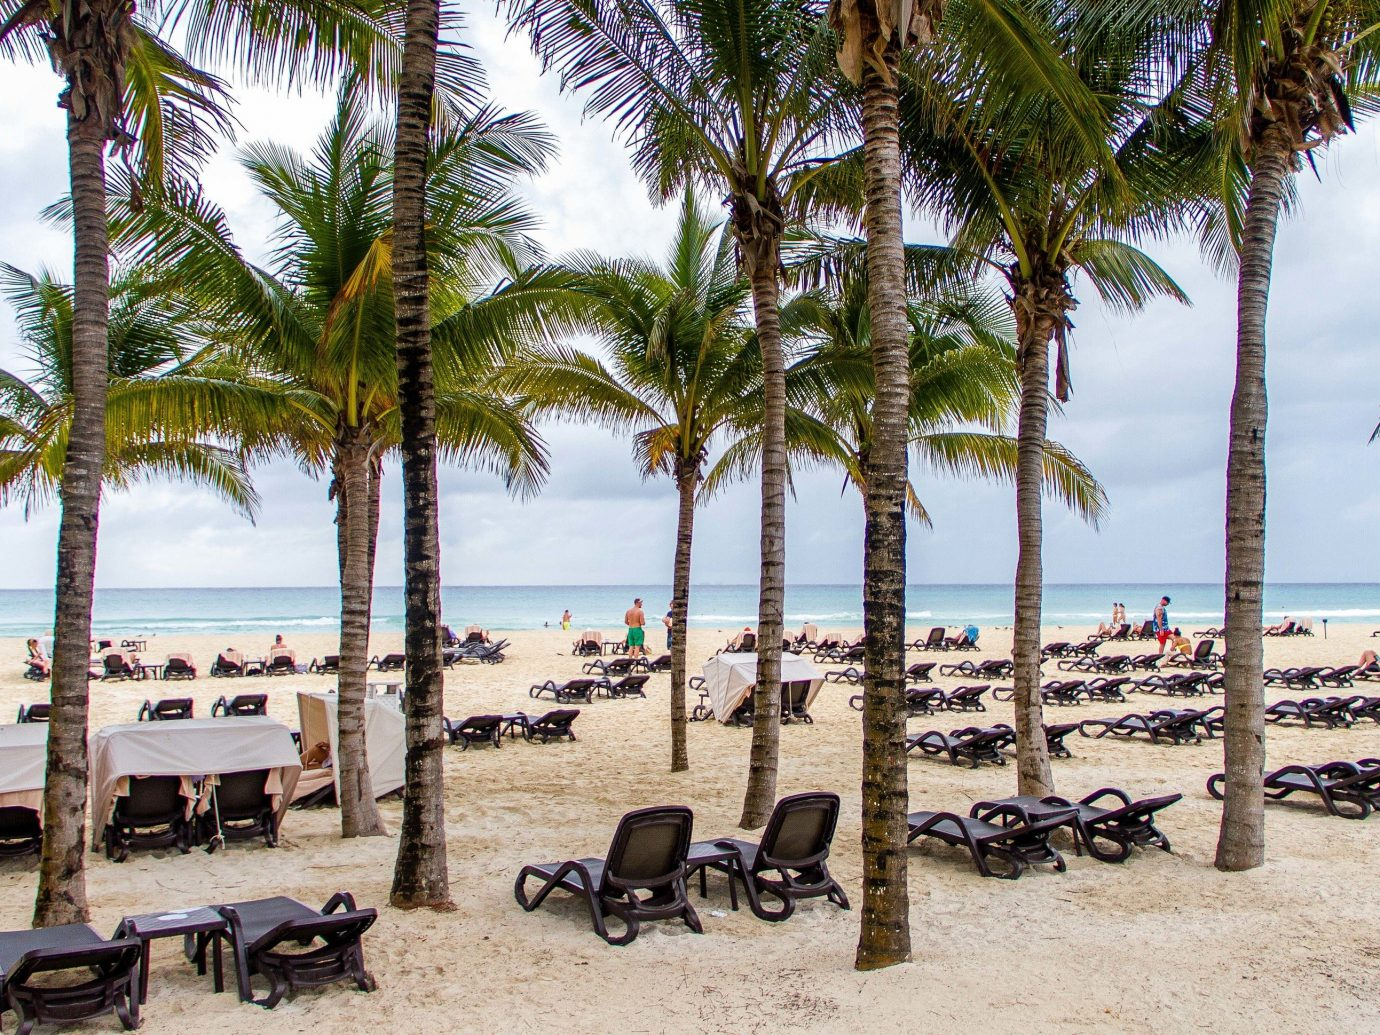 All-inclusive All-Inclusive Resorts Mexico Riviera Maya, Mexico Beach arecales palm tree tree Resort tropics vacation shore tourism plant caribbean Sea sky sand coconut